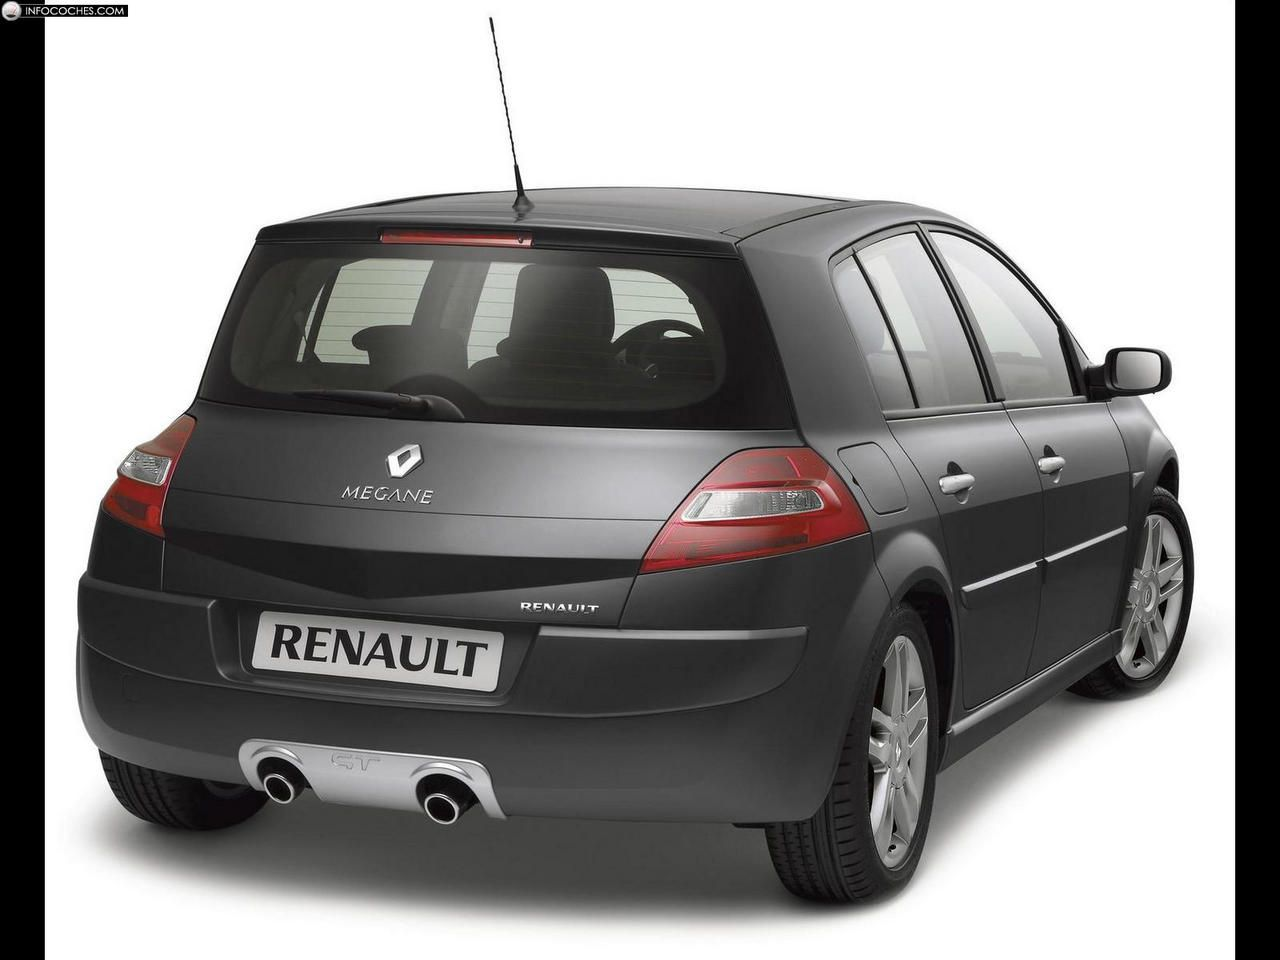 renault megane ii gt renault pinterest cars. Black Bedroom Furniture Sets. Home Design Ideas